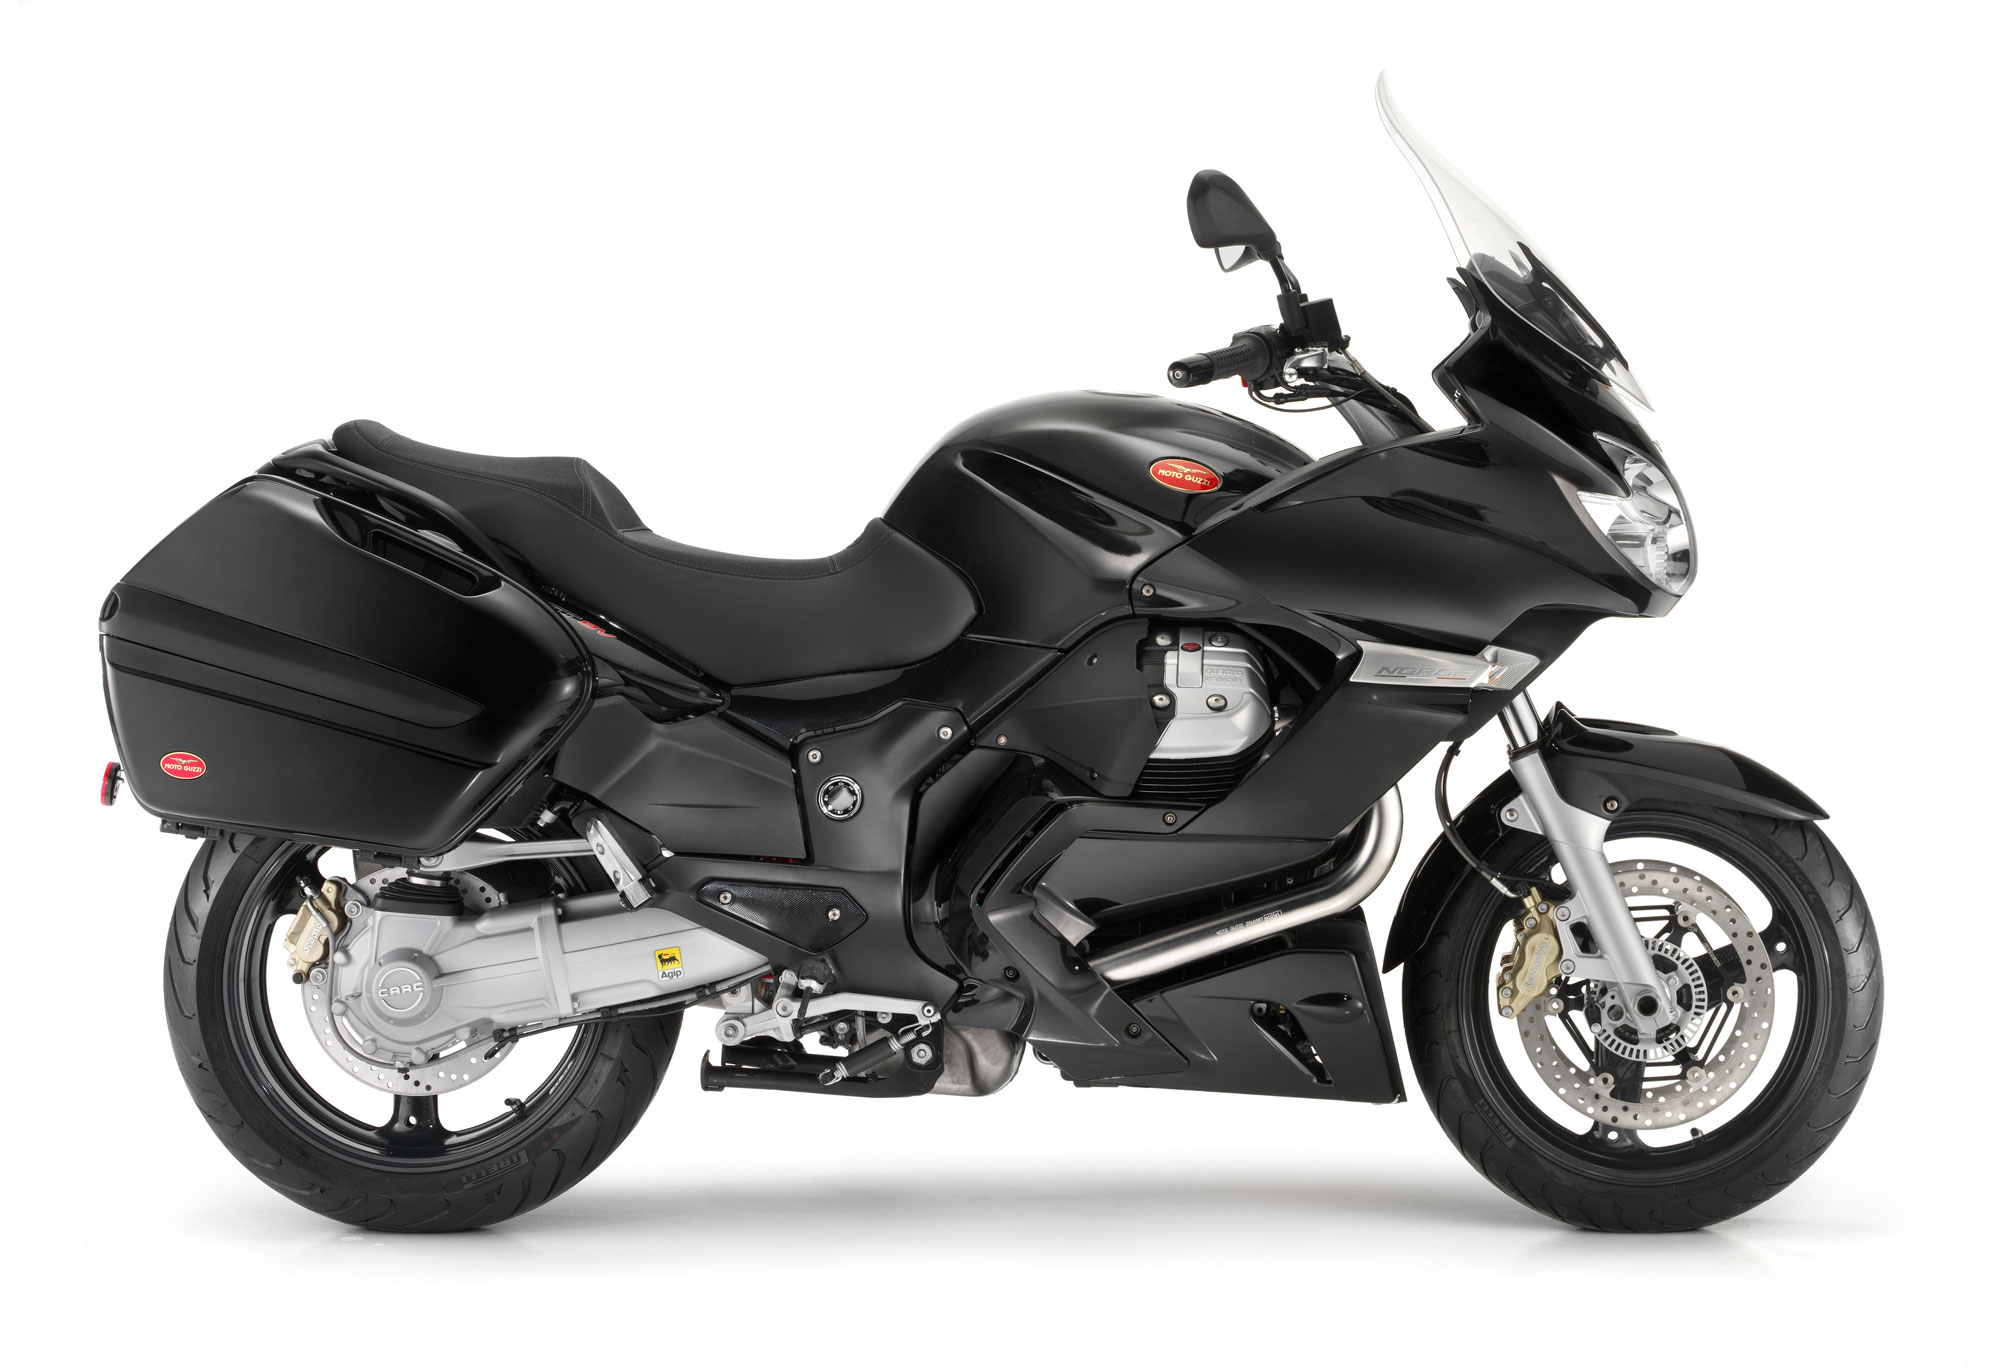 2013 moto guzzi norge 1200gt 8v abs review